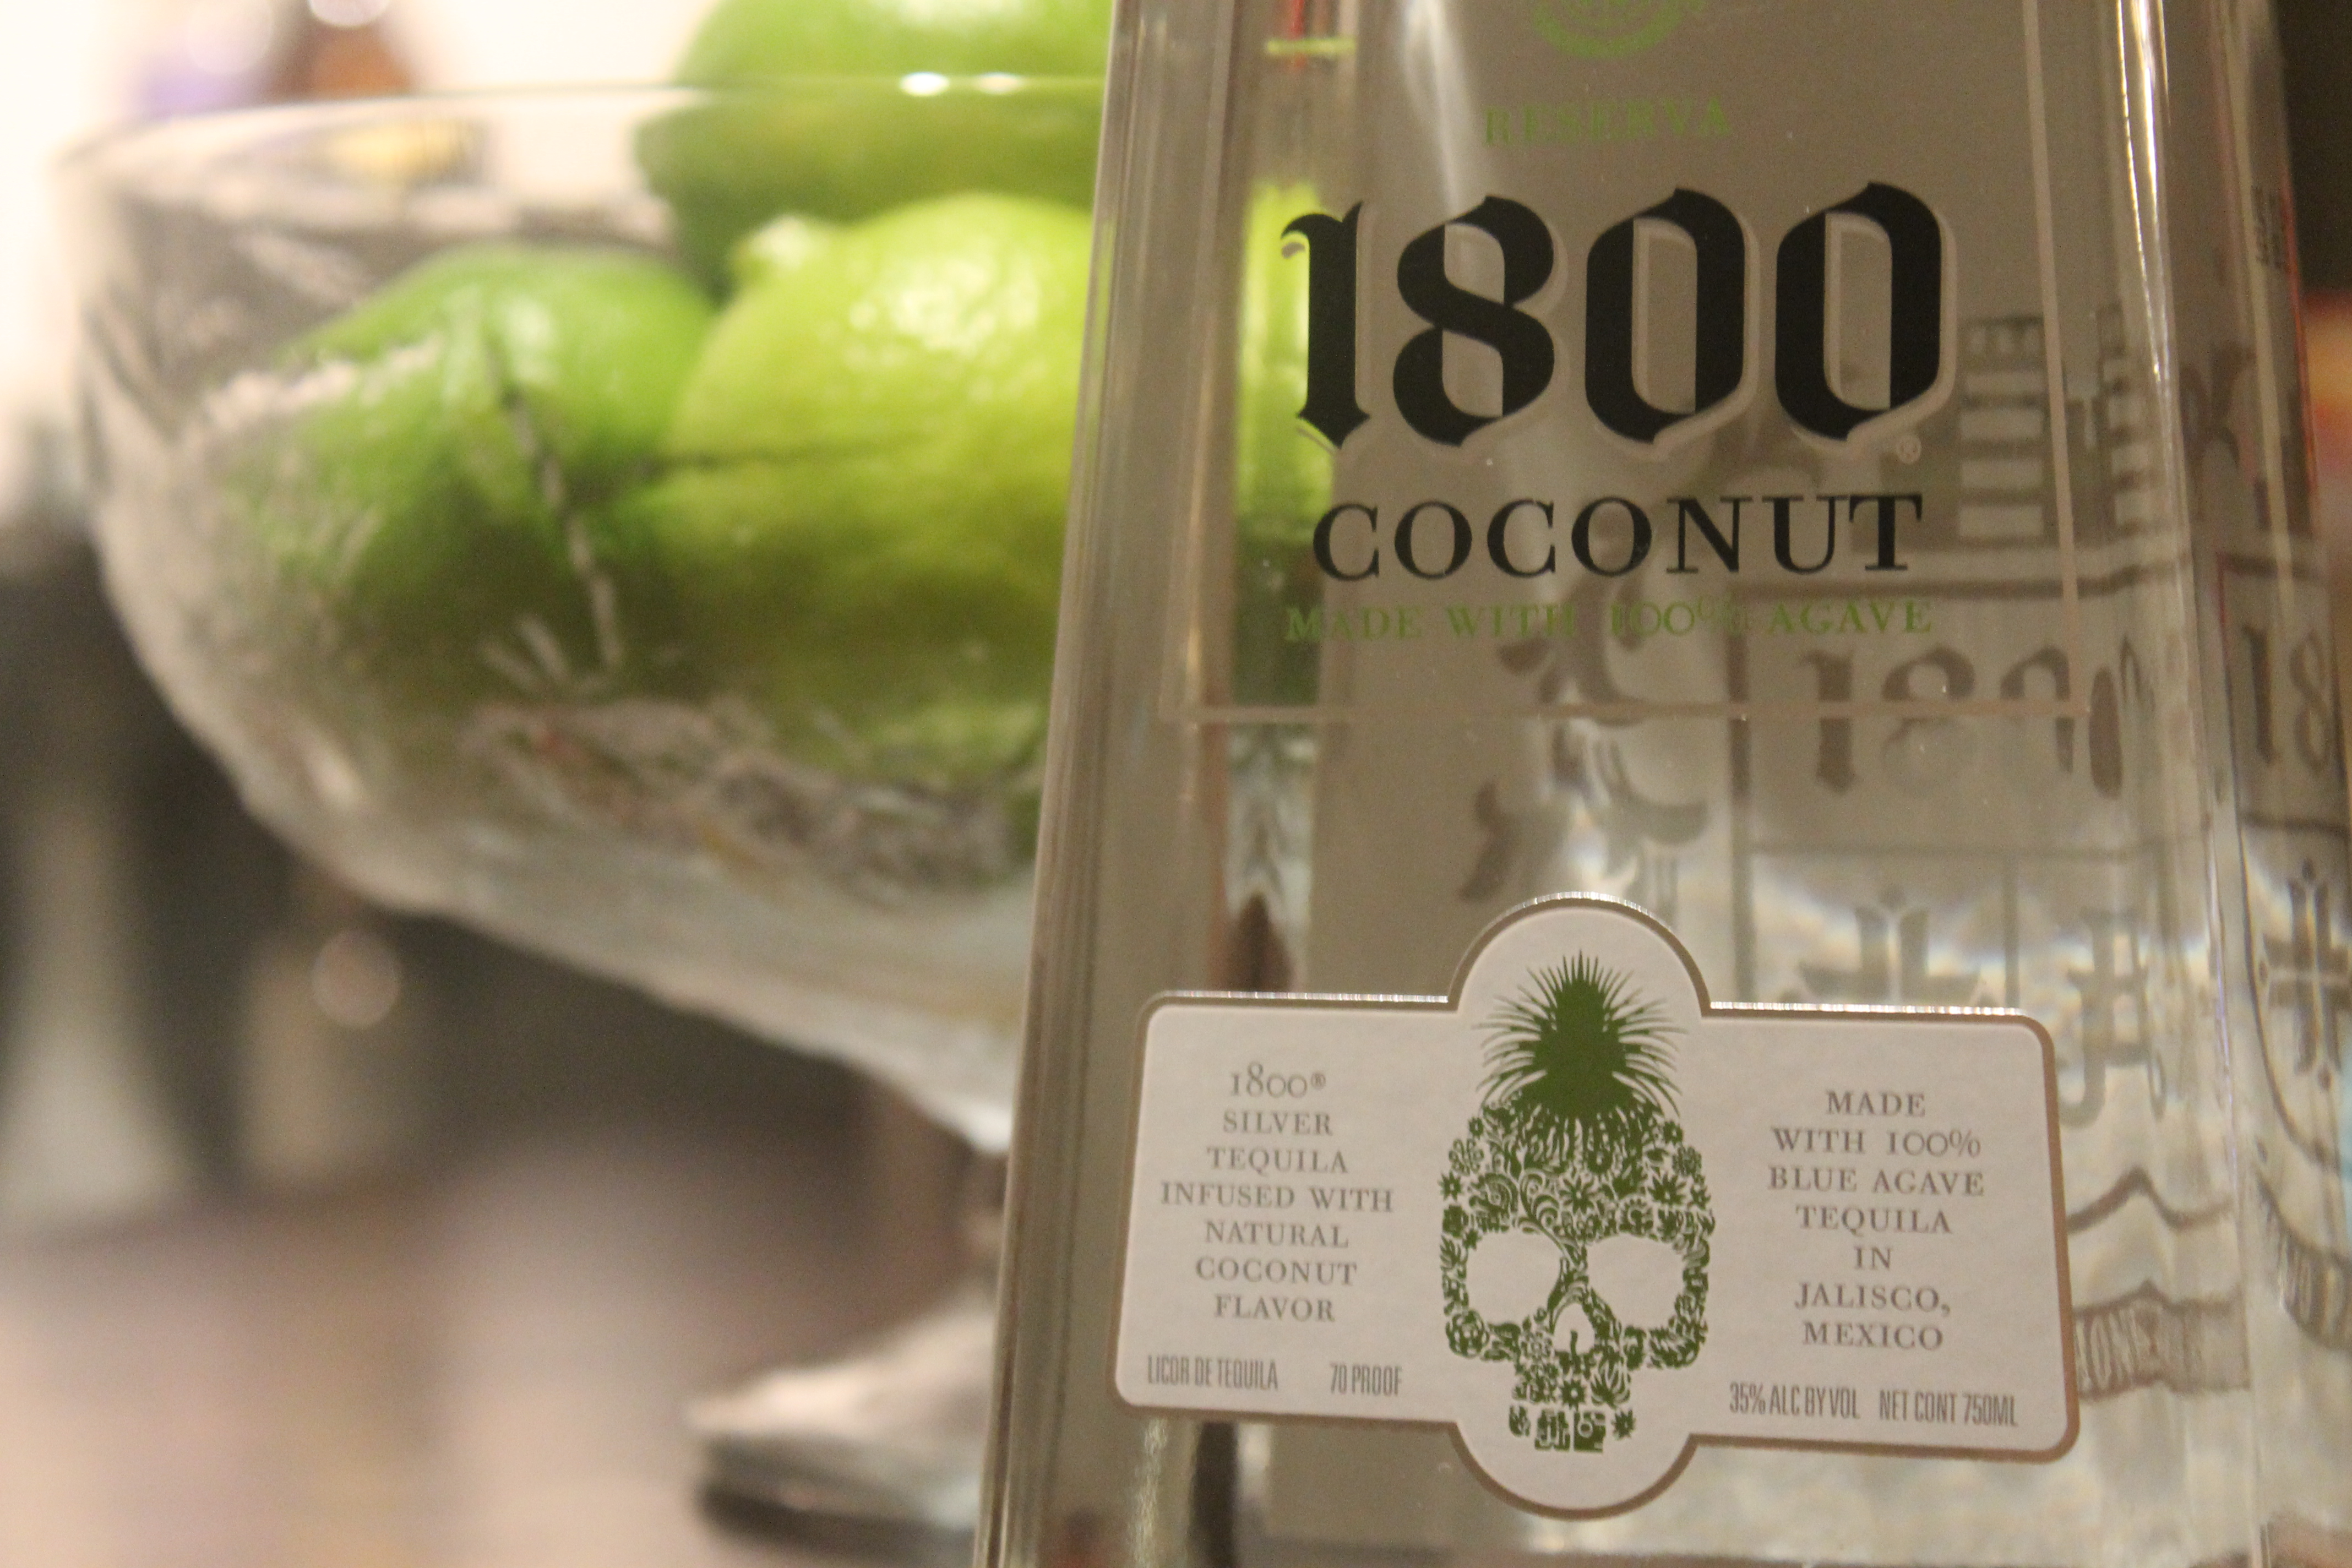 1800 Coconut Tequila Review